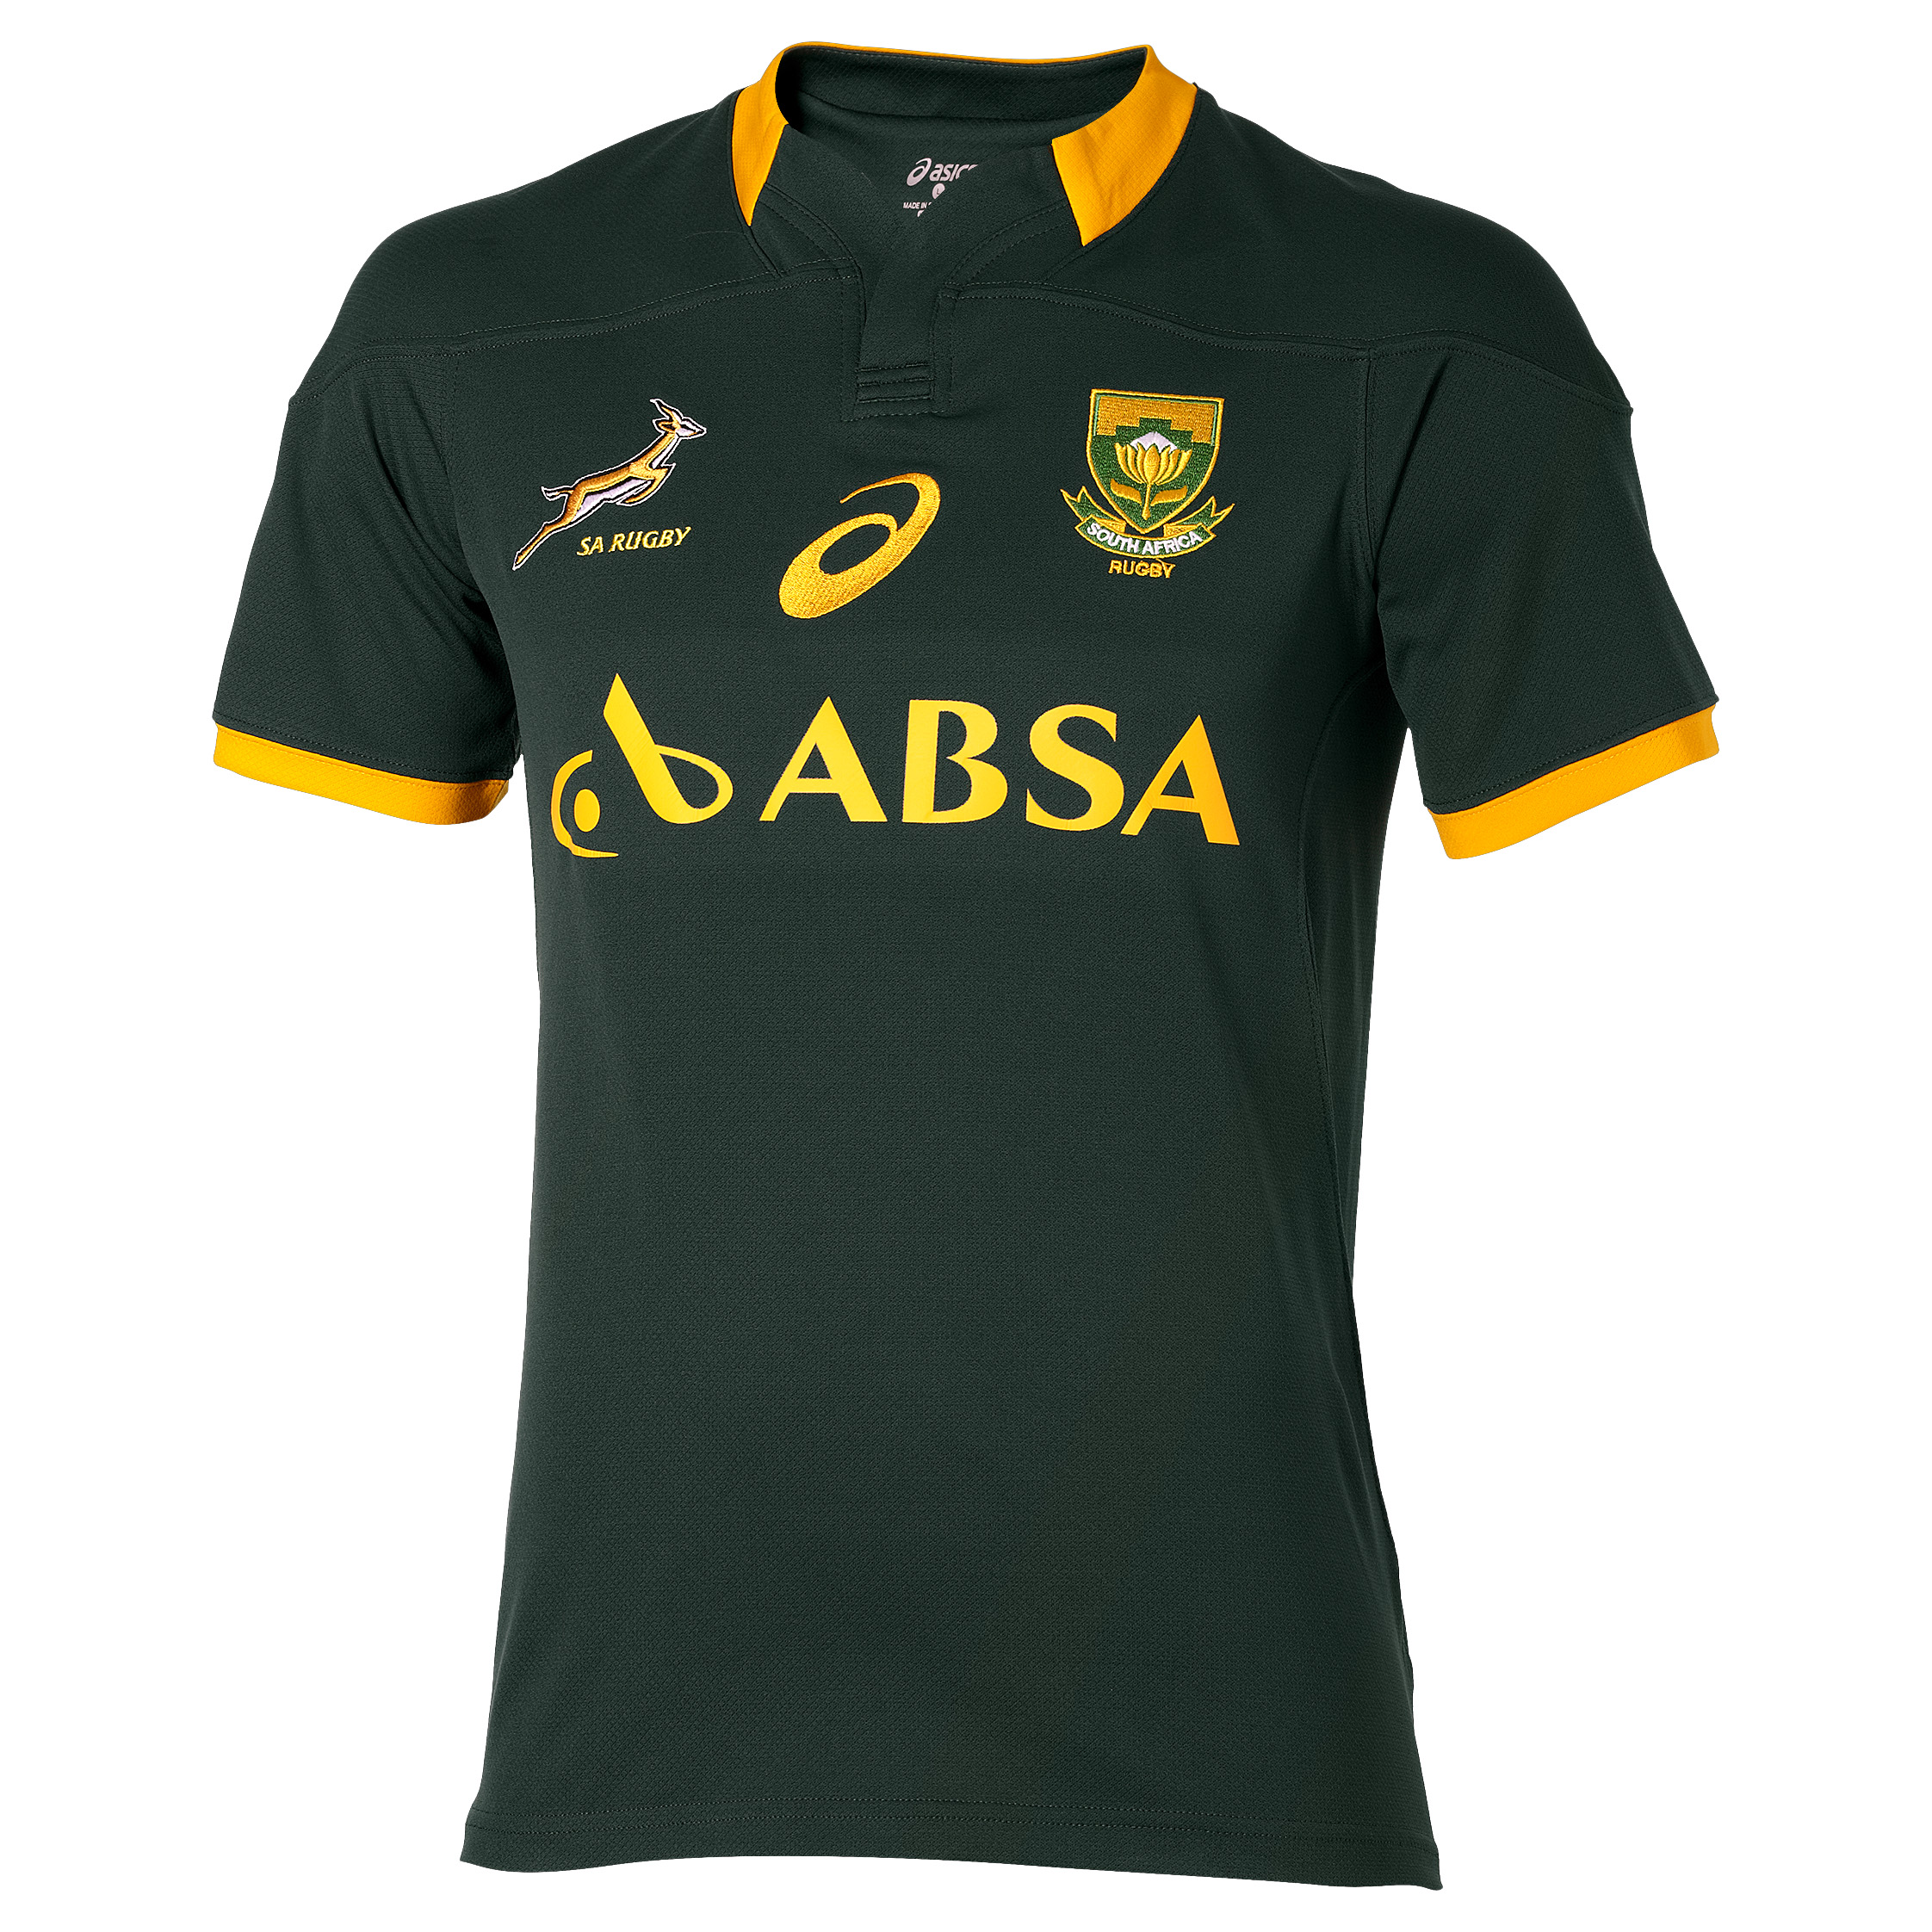 South Africa Springboks Home Replica Match Jersey 2014/15 Green